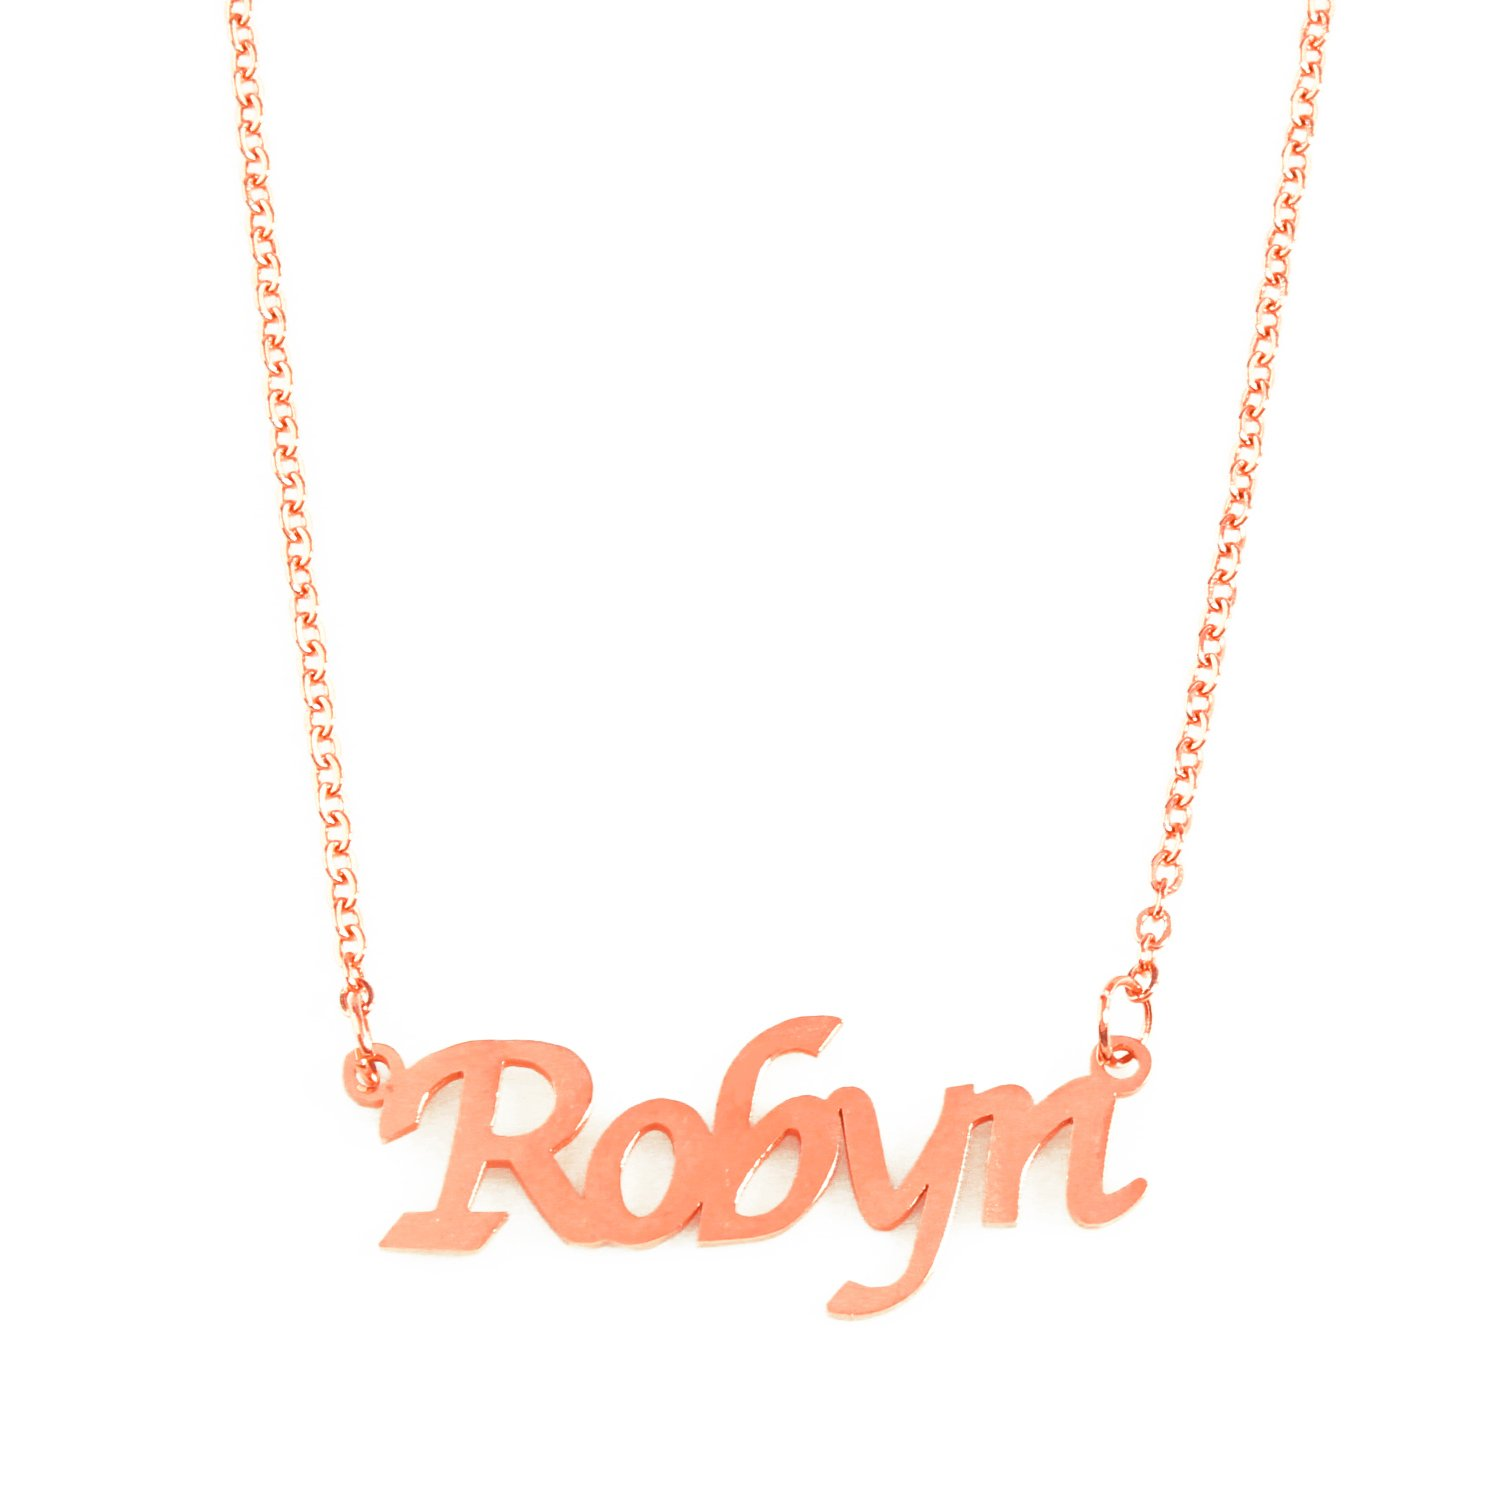 Zacria Robyn Name Necklace 18ct Rose Gold Plated